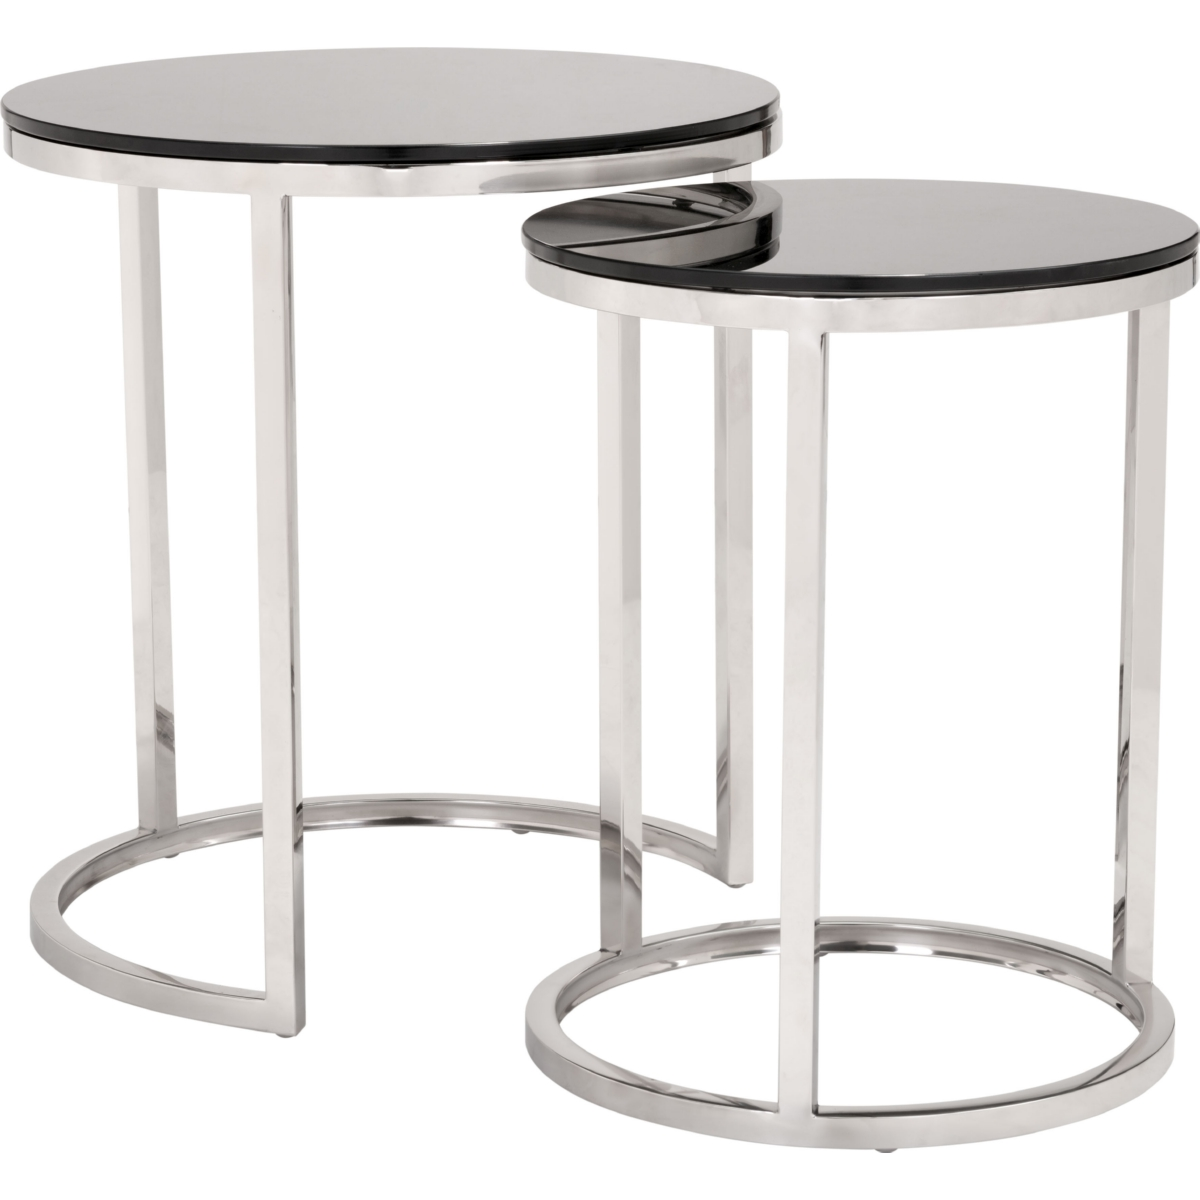 Zuo Modern Rem Coffee Table Set in Black Tempered Glass on